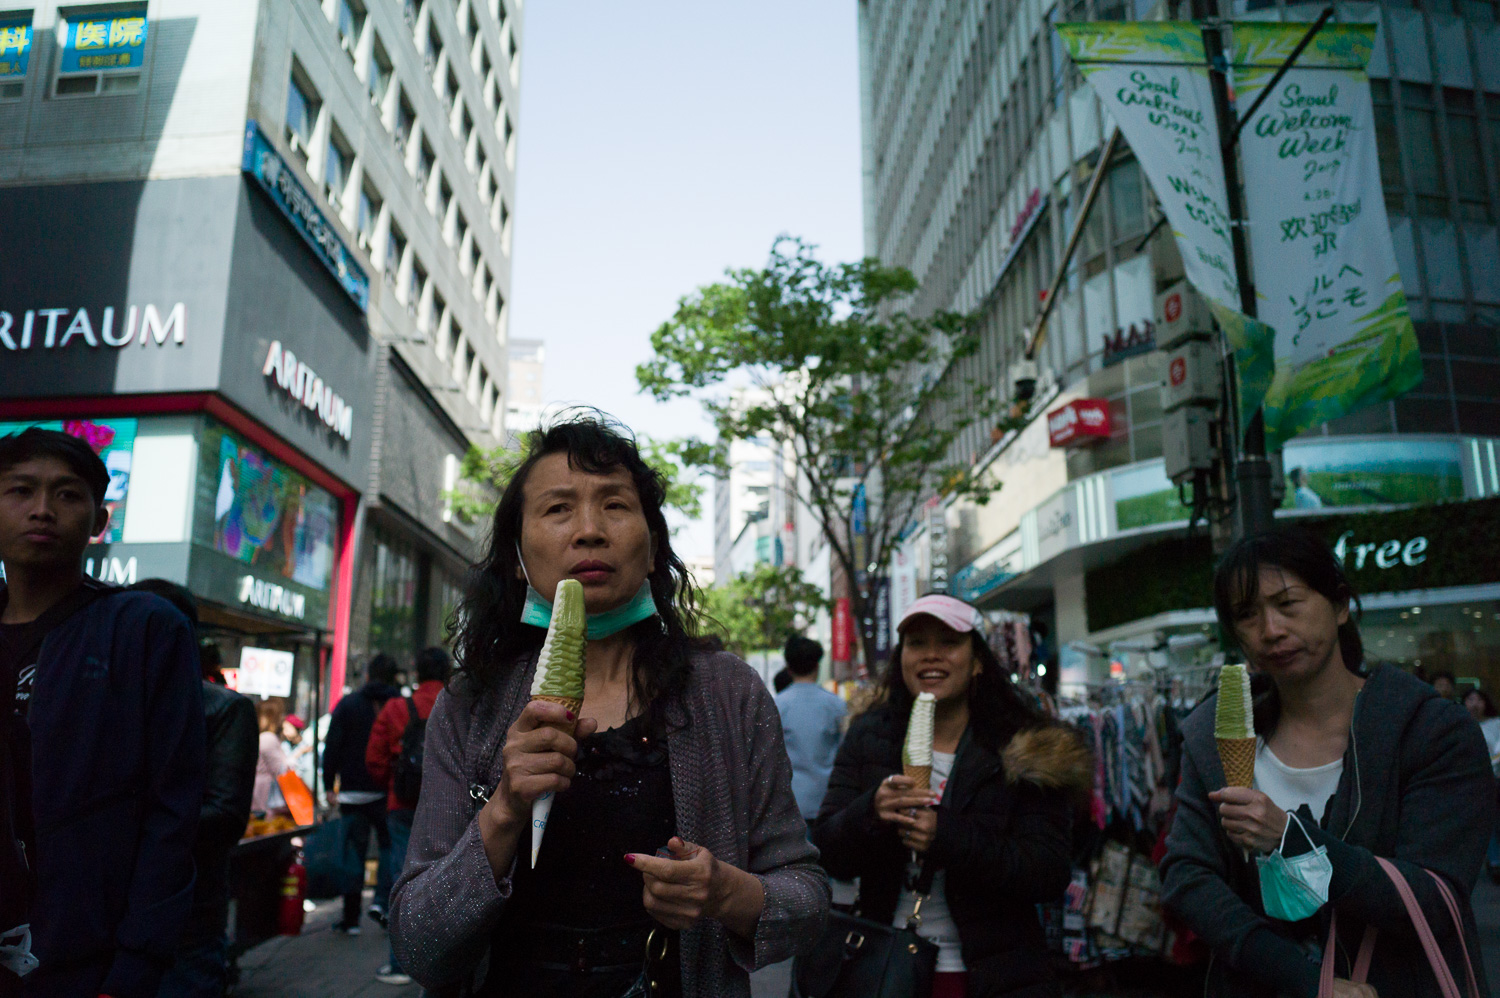 Street Photography in Myeongdong